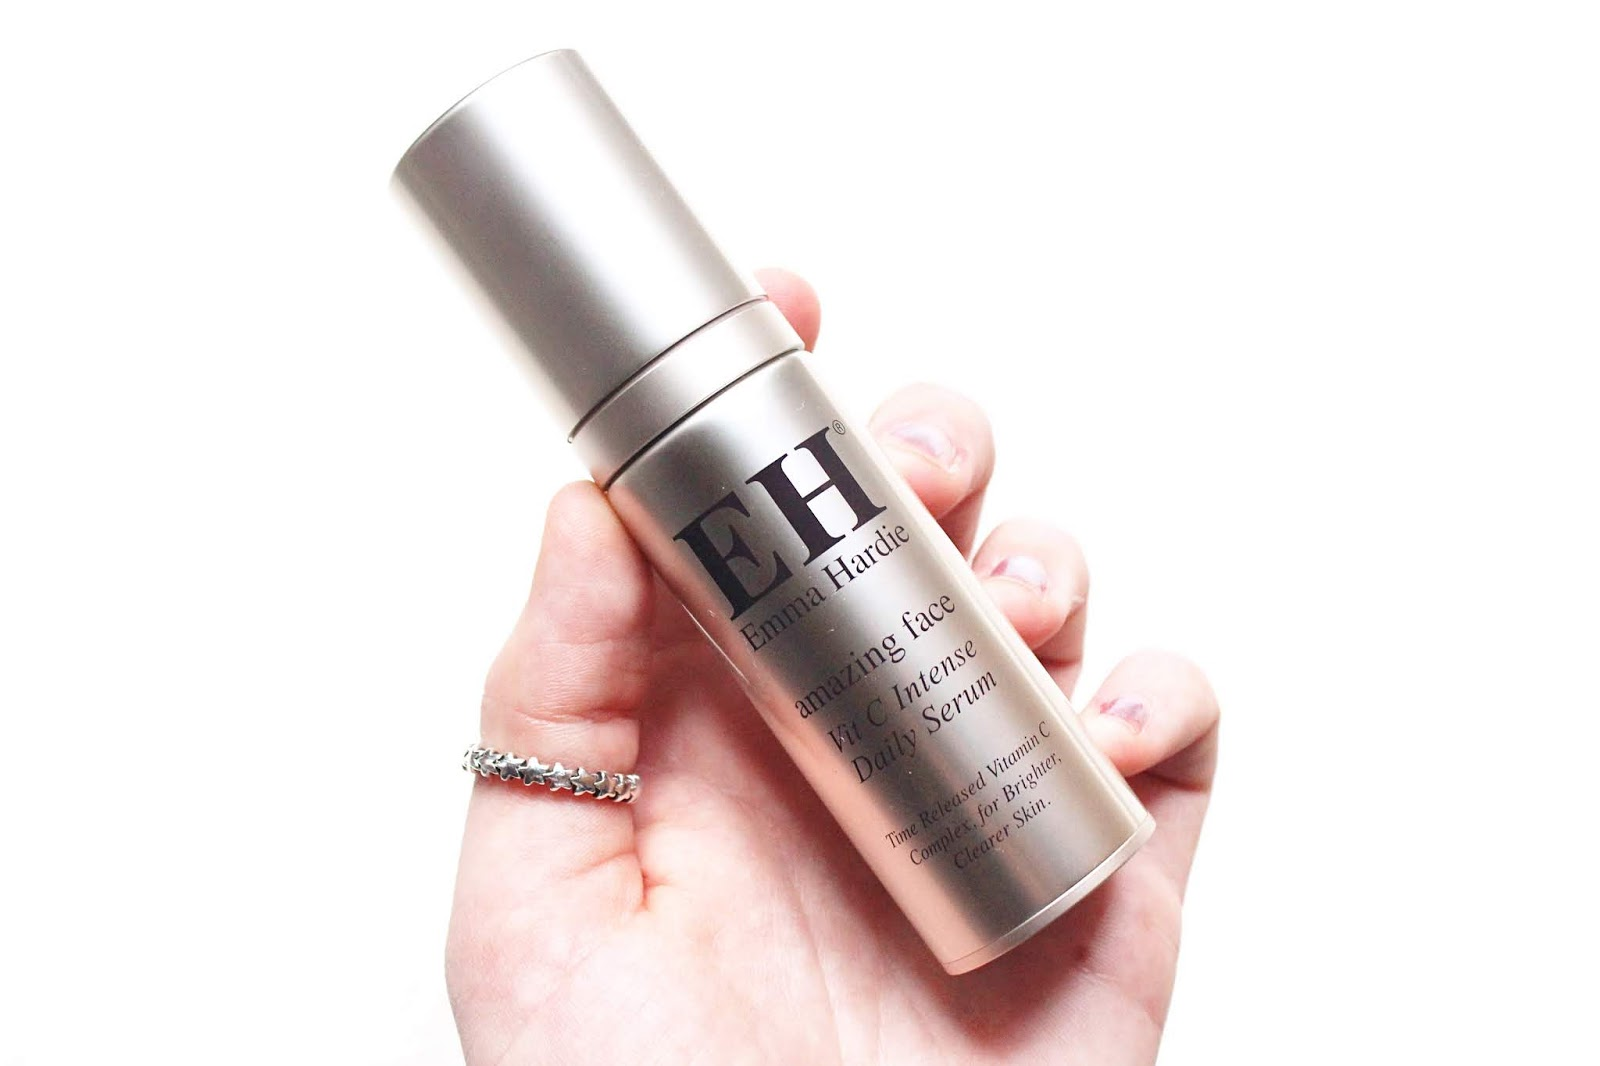 Emma Hardie Vit C Intense Daily Serum Review